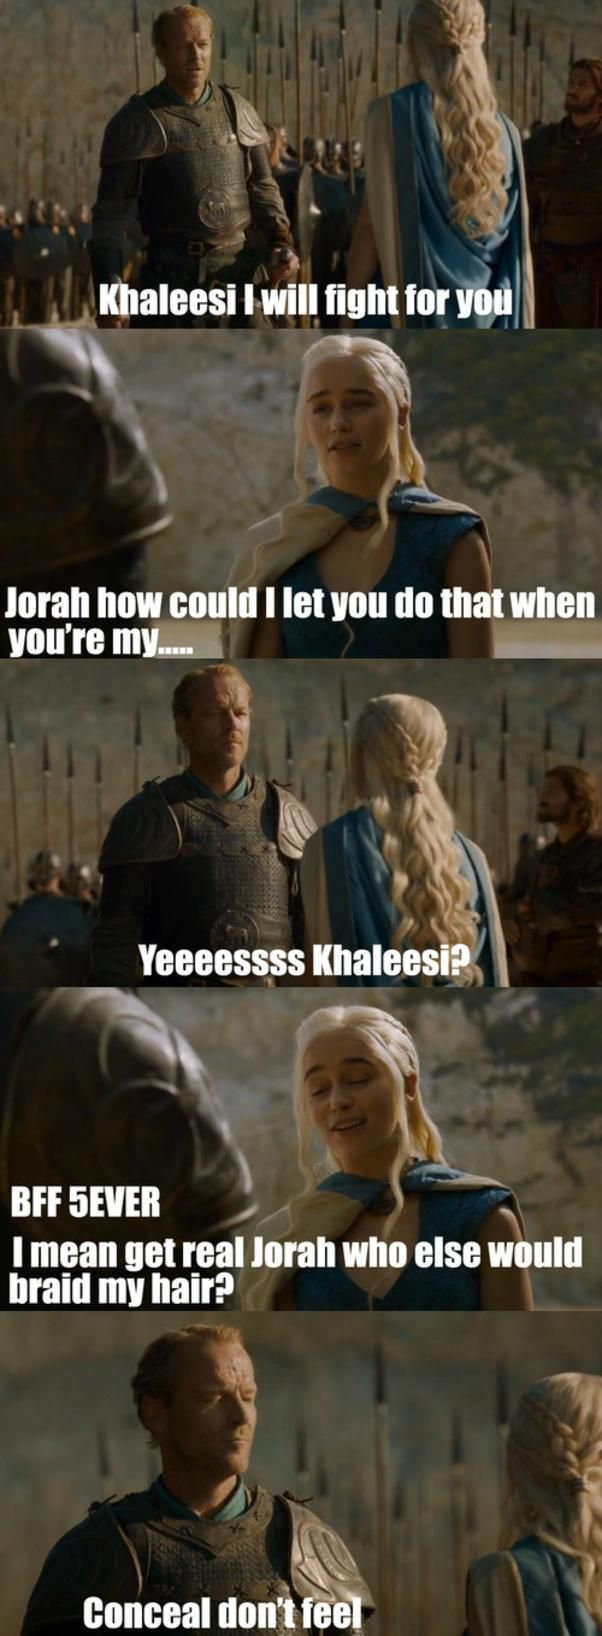 "game of thrones season 2 memes | Top 10 ""Game of Thrones"" Memes For Season 4"